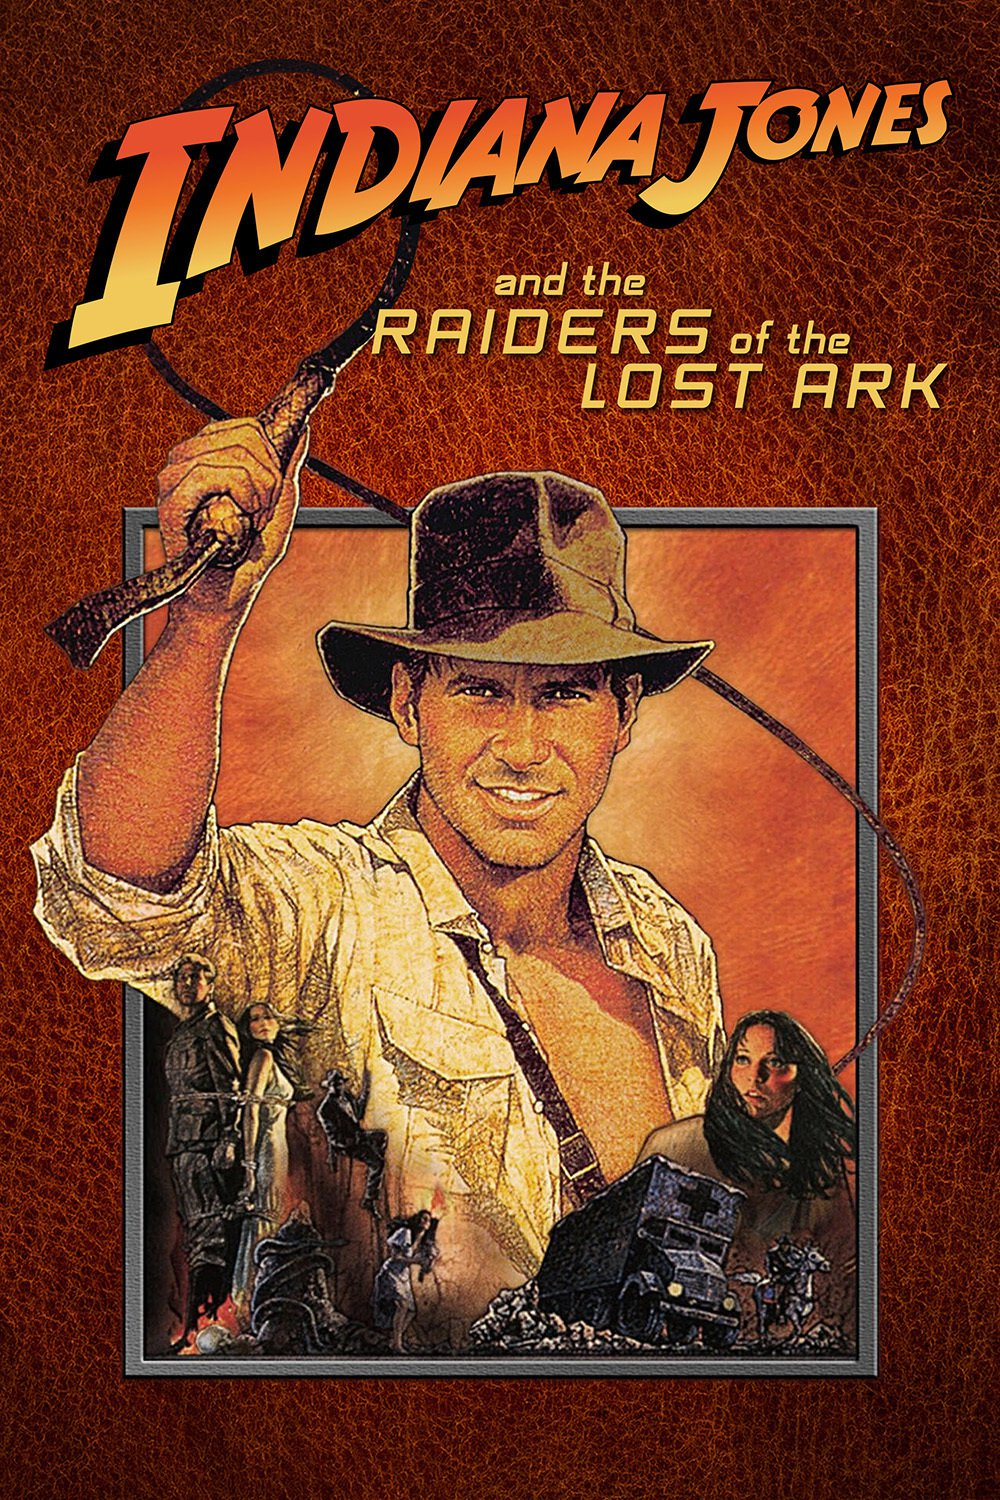 Indiana Jones and Raiders of the Lost Ark (1981) ταινιες online seires xrysoi greek subs